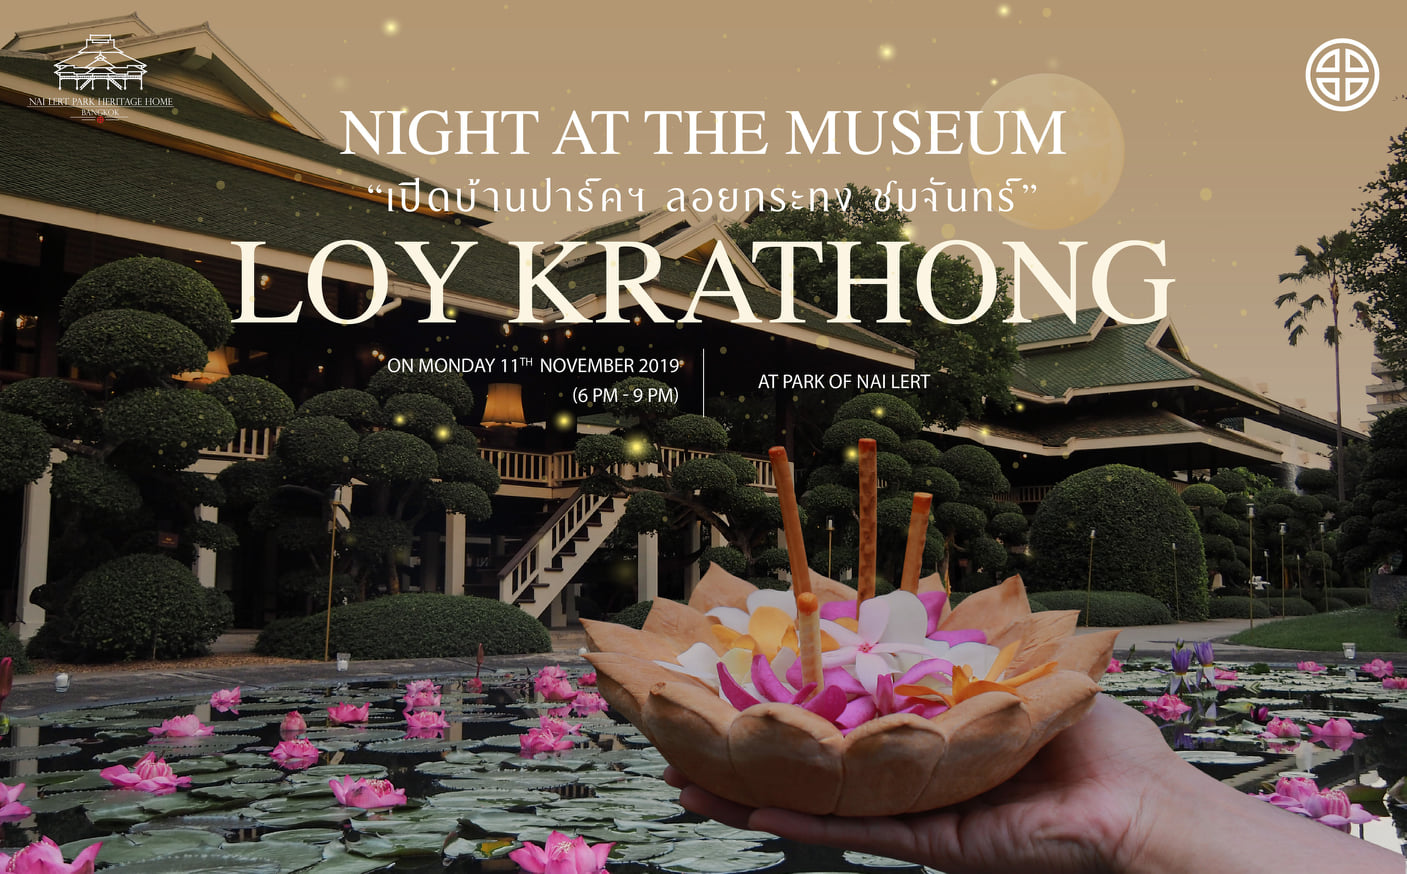 Loy Krathong, Loy Krathong 2019, celebrate Loy krathong, where to celebrate Loy Krathon, Loy krathong in bangkok, Thai traditional costumes, bangkok events, Thai festivals, candlelight festival, Nai Lert Park Bangkok, Nai Lert Bangkok Loy krathong